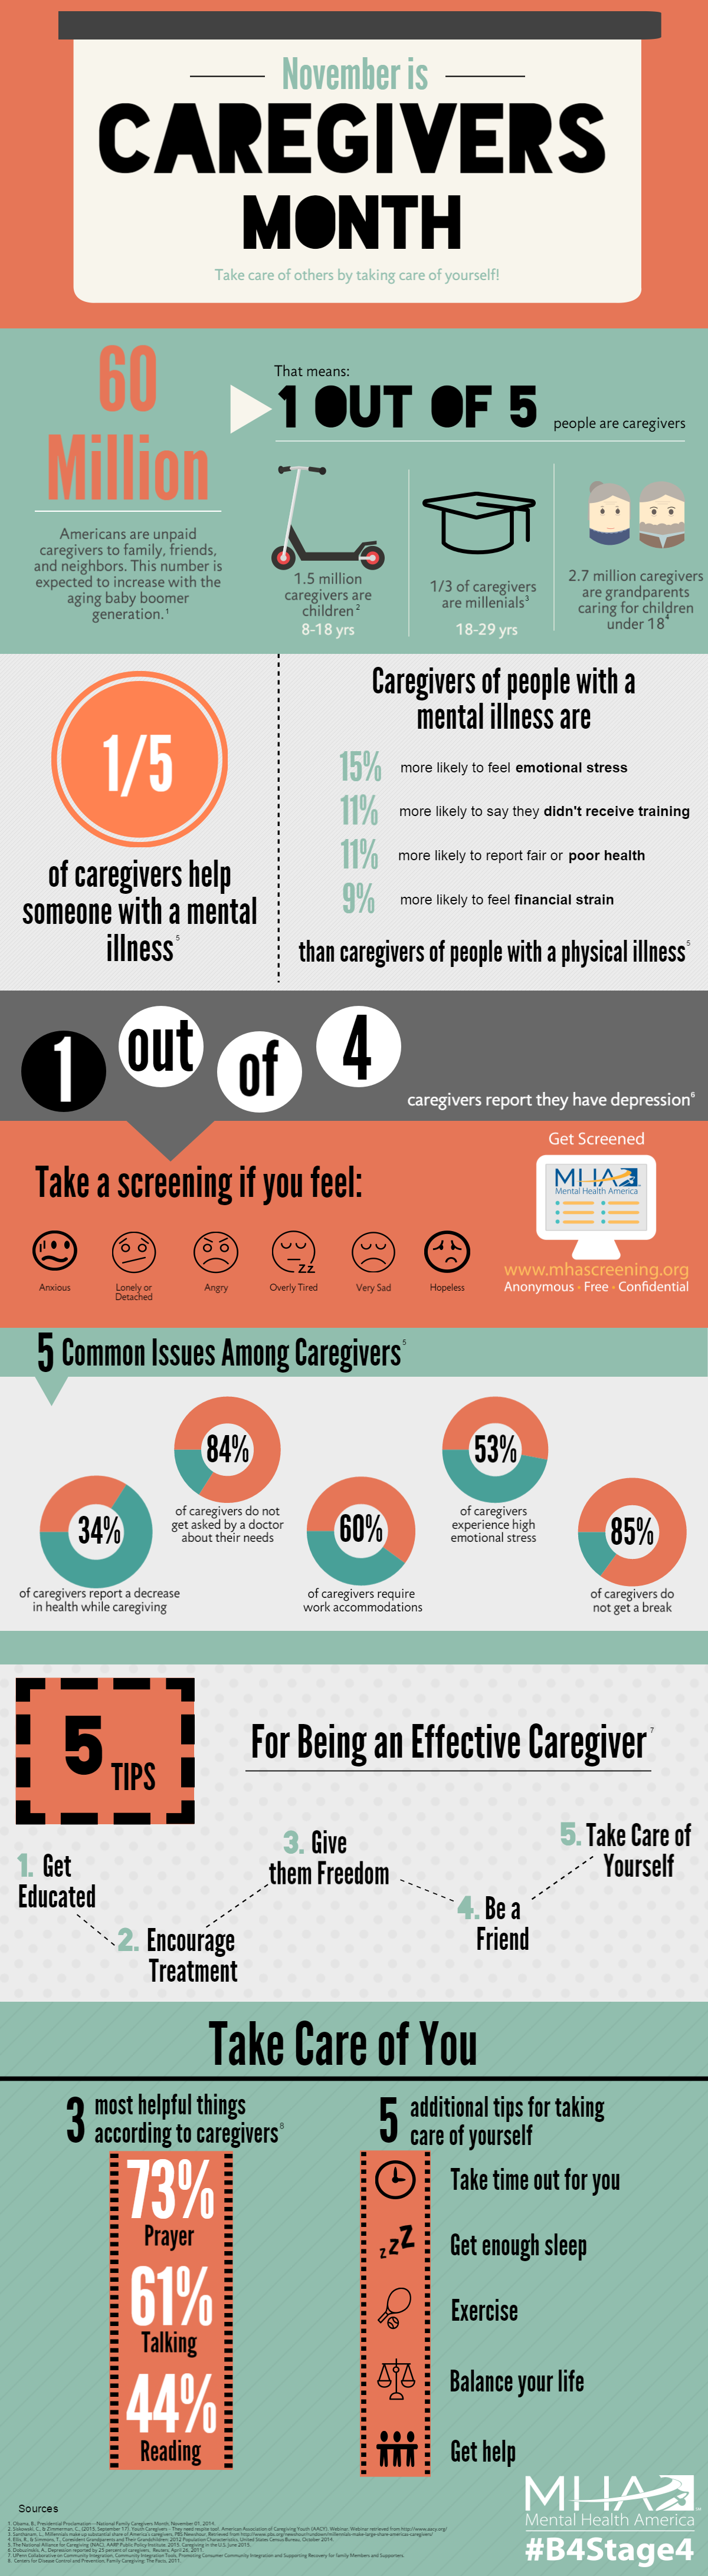 November is Family Caregivers Month! Mental Health America is proud to recognize November as Family Caregivers Month. Check out the infographic below for some quick facts about caregivers of individuals with mental illnesses and the issues they face..